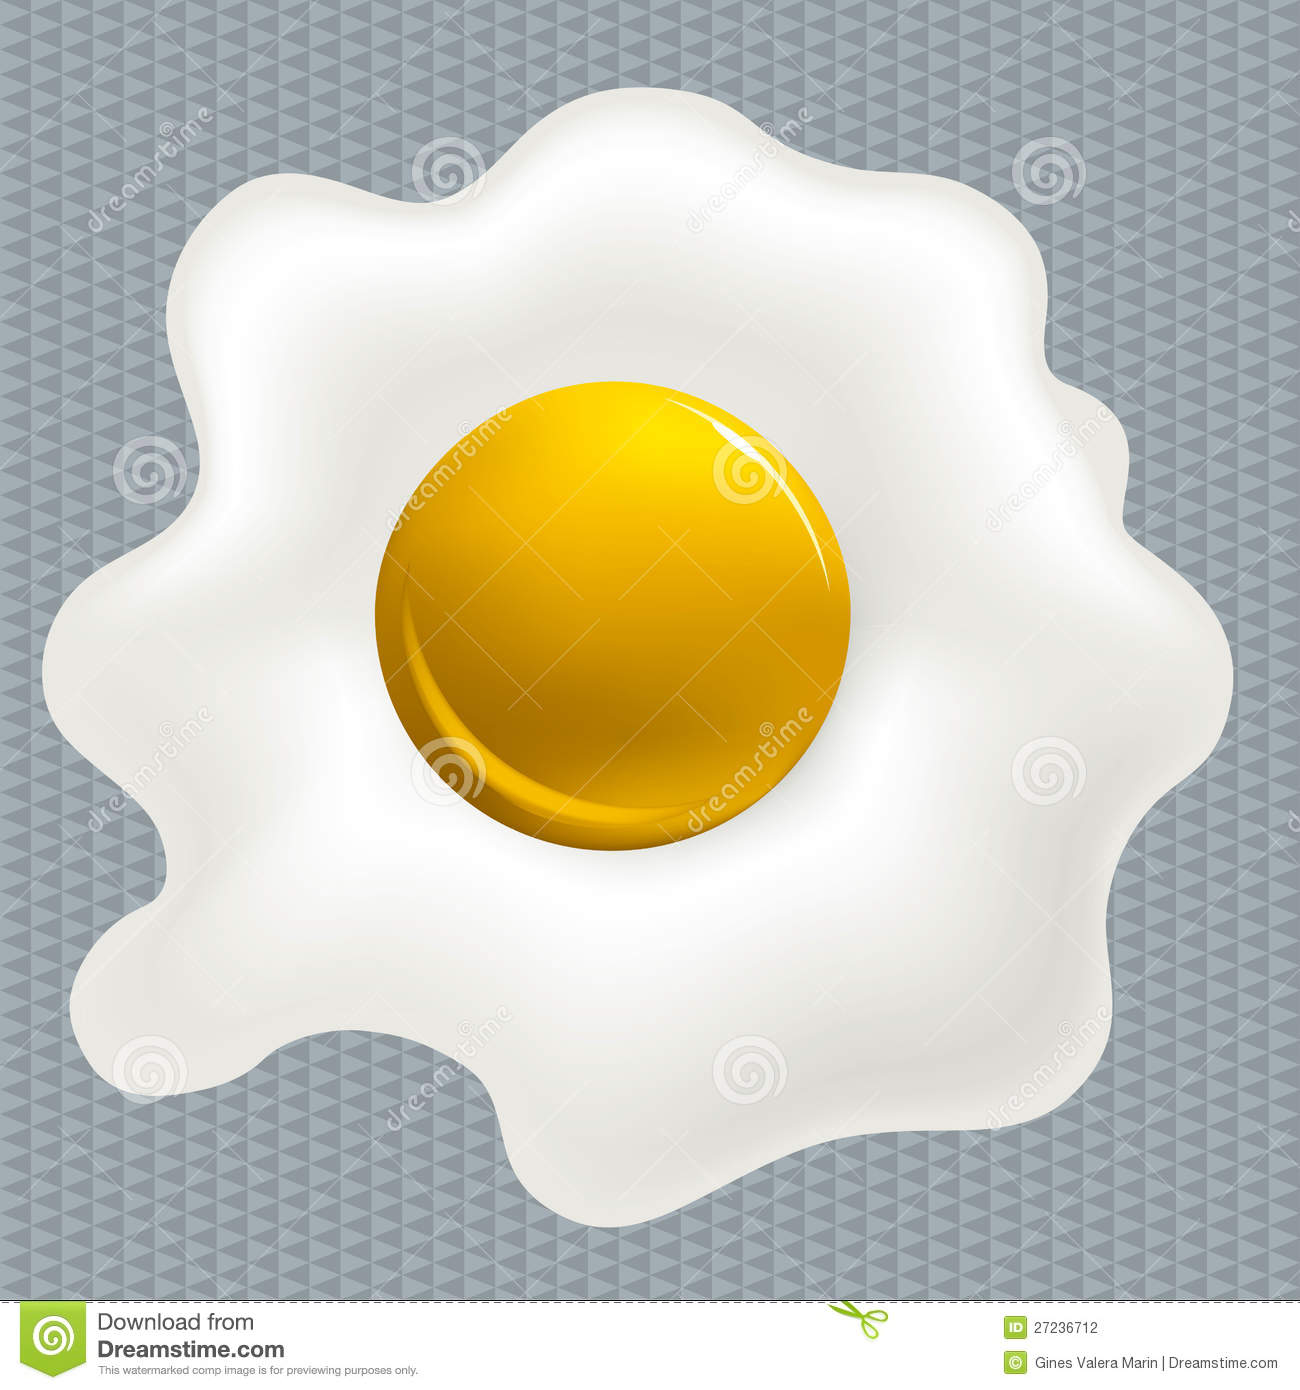 Fried Egg Clipart Clean Fried Egg